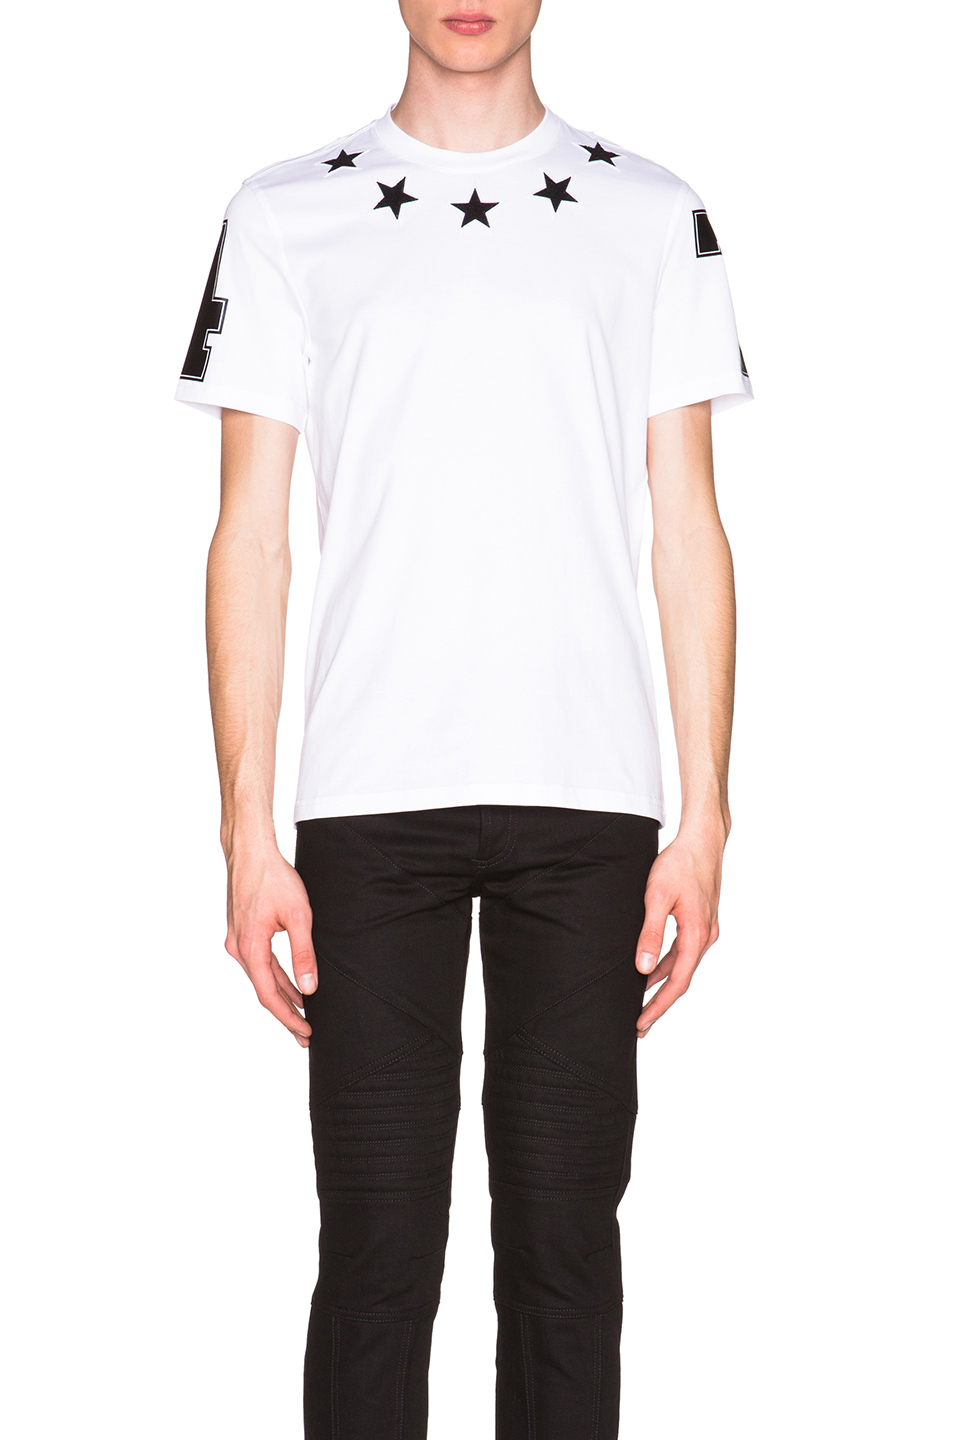 Givenchy Cuban Fit Star Collar 74 Tee in White